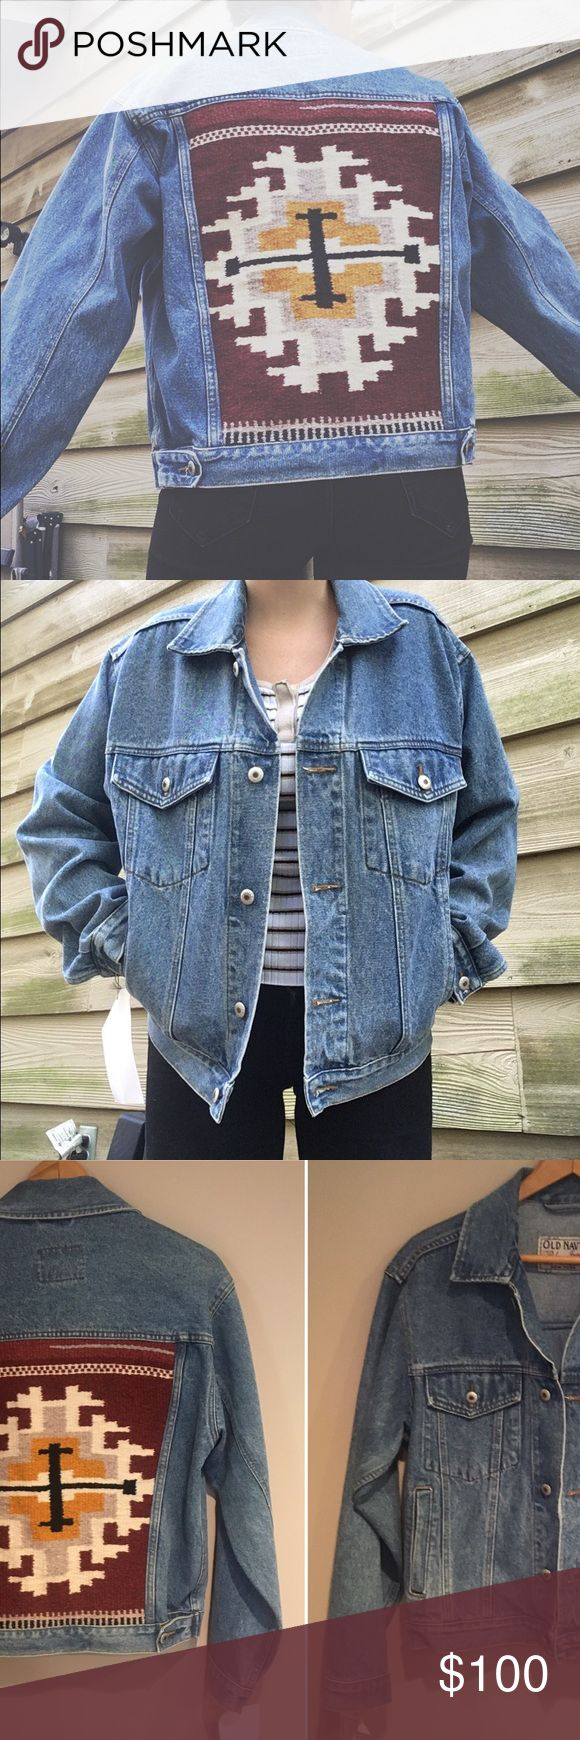 "❕LOWEST❕VINTAGE HAND-WOVEN SOUTHWEST DENIM JACKET VINTAGE REWORKED OLD NAVY DENIM JACKET WITH HAND-WOVEN SOUTHWEST INSET ✨incredible craftsmanship/artistry has gone into this reworked/hand-woven gem (artist B. Maggie Sherrill) • perfect thrifted condition (no signs of damage) ❣️PRICE FIRM UNLESS BUNDLED  MATERIAL: 100% cotton  BRAND: Old Navy Blue Jeans SF NY     SIZE: - W: 20"" (pit to pit) L: 23"" (top to bottom), 23.5"" sleeves 〰measurements taken laying flat  〰listed for style reference…"